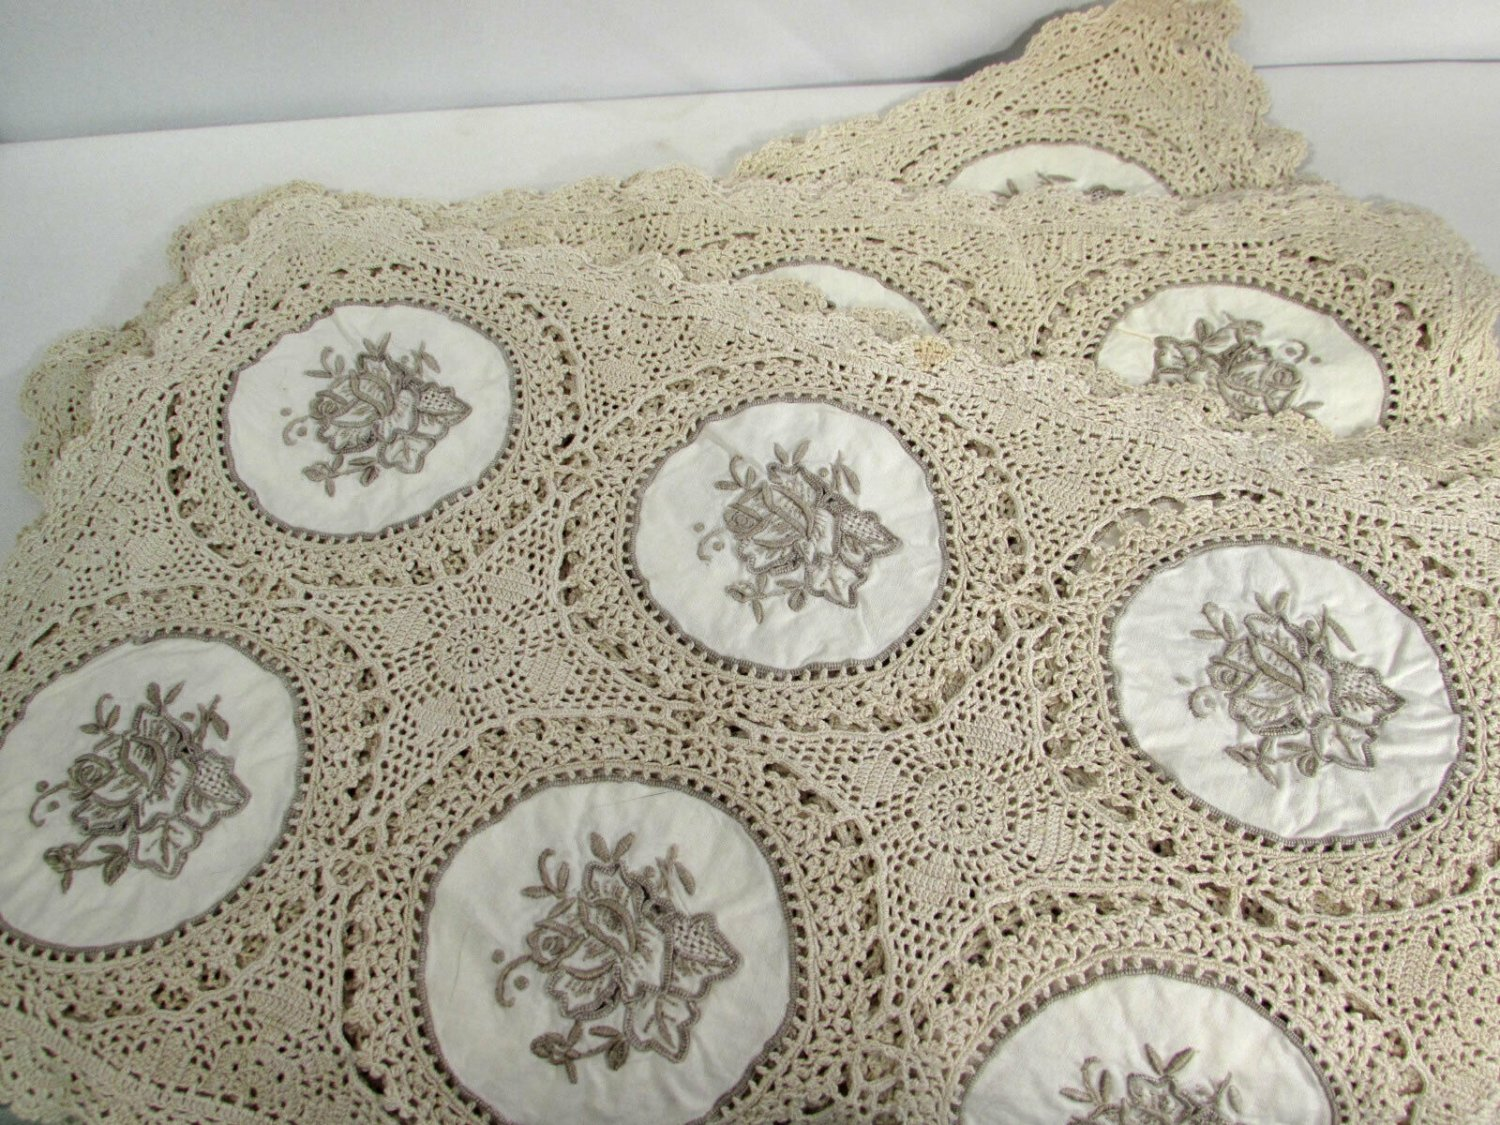 Crocheted & Embroidered Ecru Beige Placemats Set of 8, 13 x 18 1/2 Inches